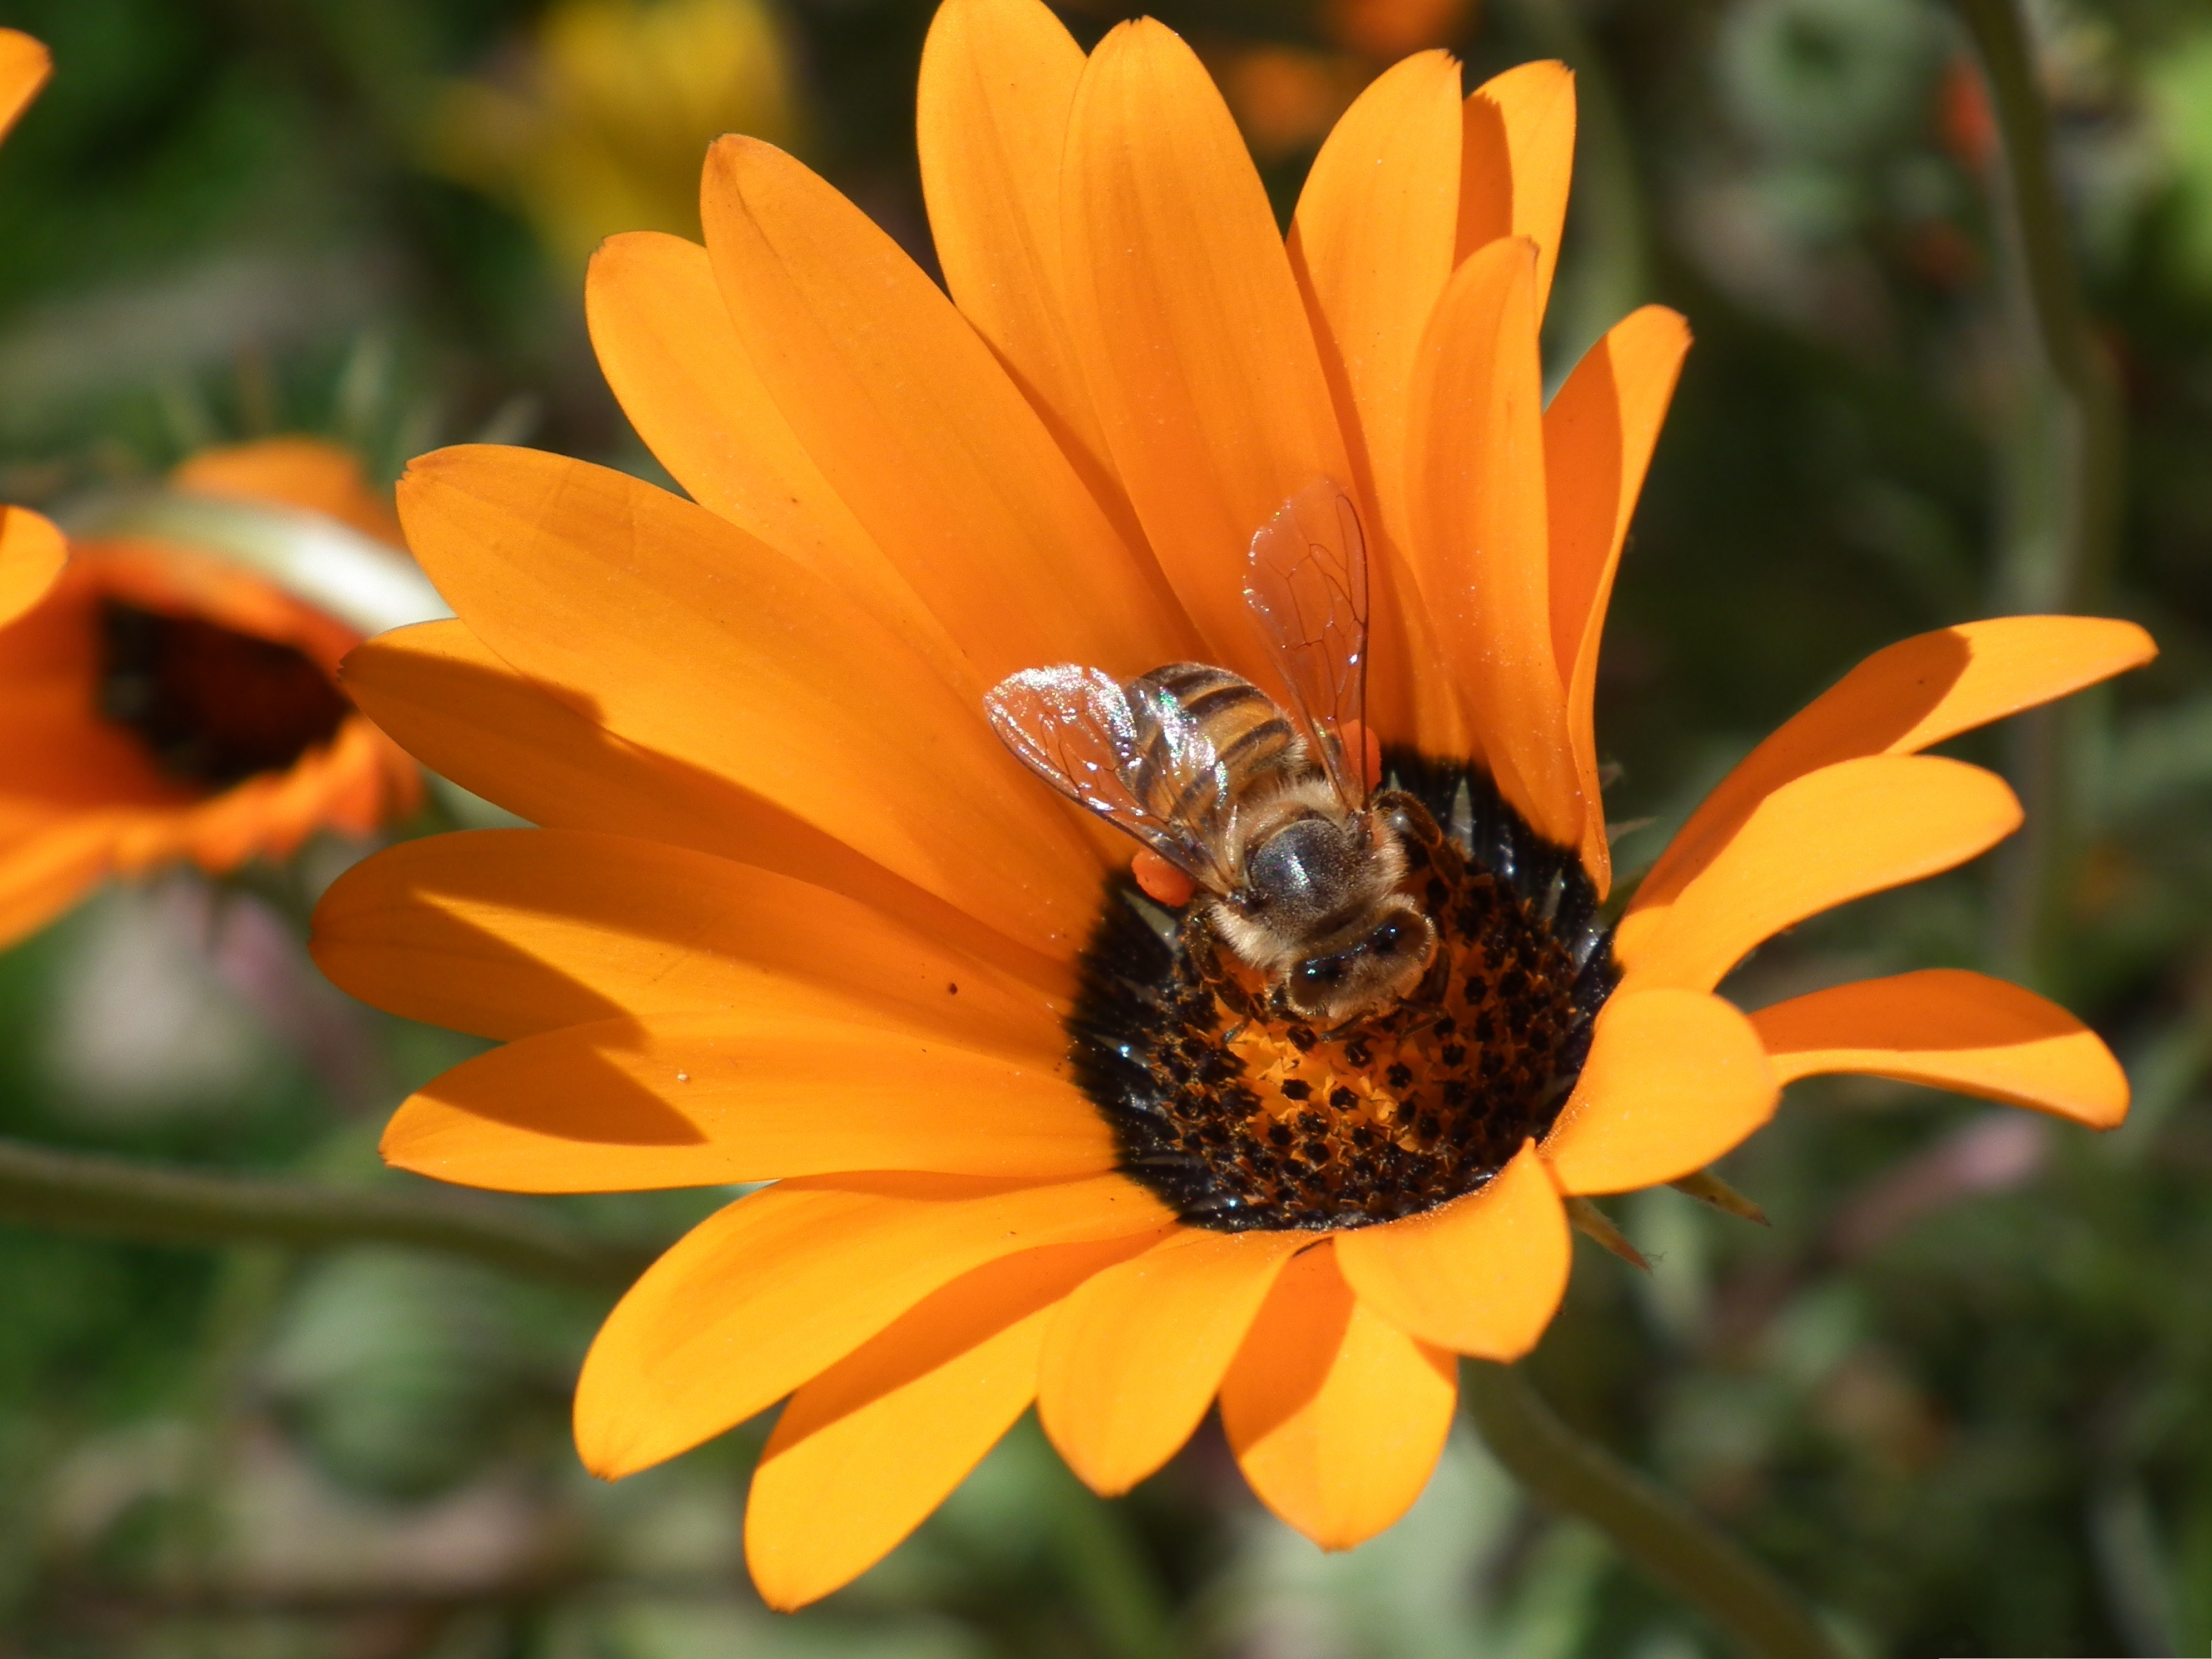 click to free download the wallpaper--Orange Flowers Picture, a Bee on Tiny Orange Flower, Working Hard 3200X2400 free wallpaper download